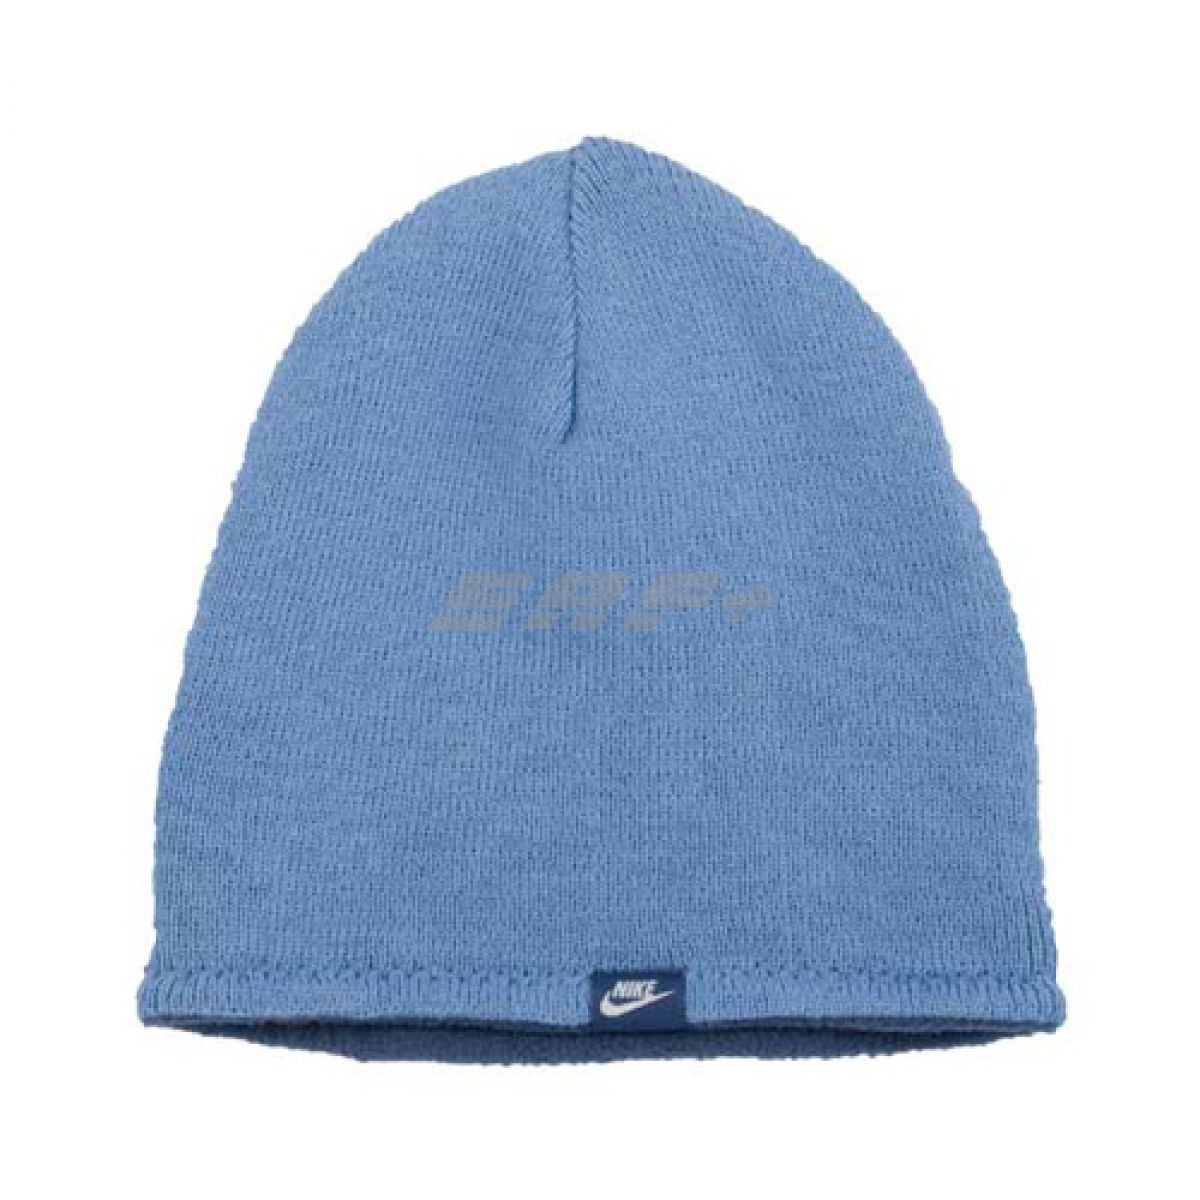 ШАПКА NIKE REVERSE FLEECE BEANIE JR